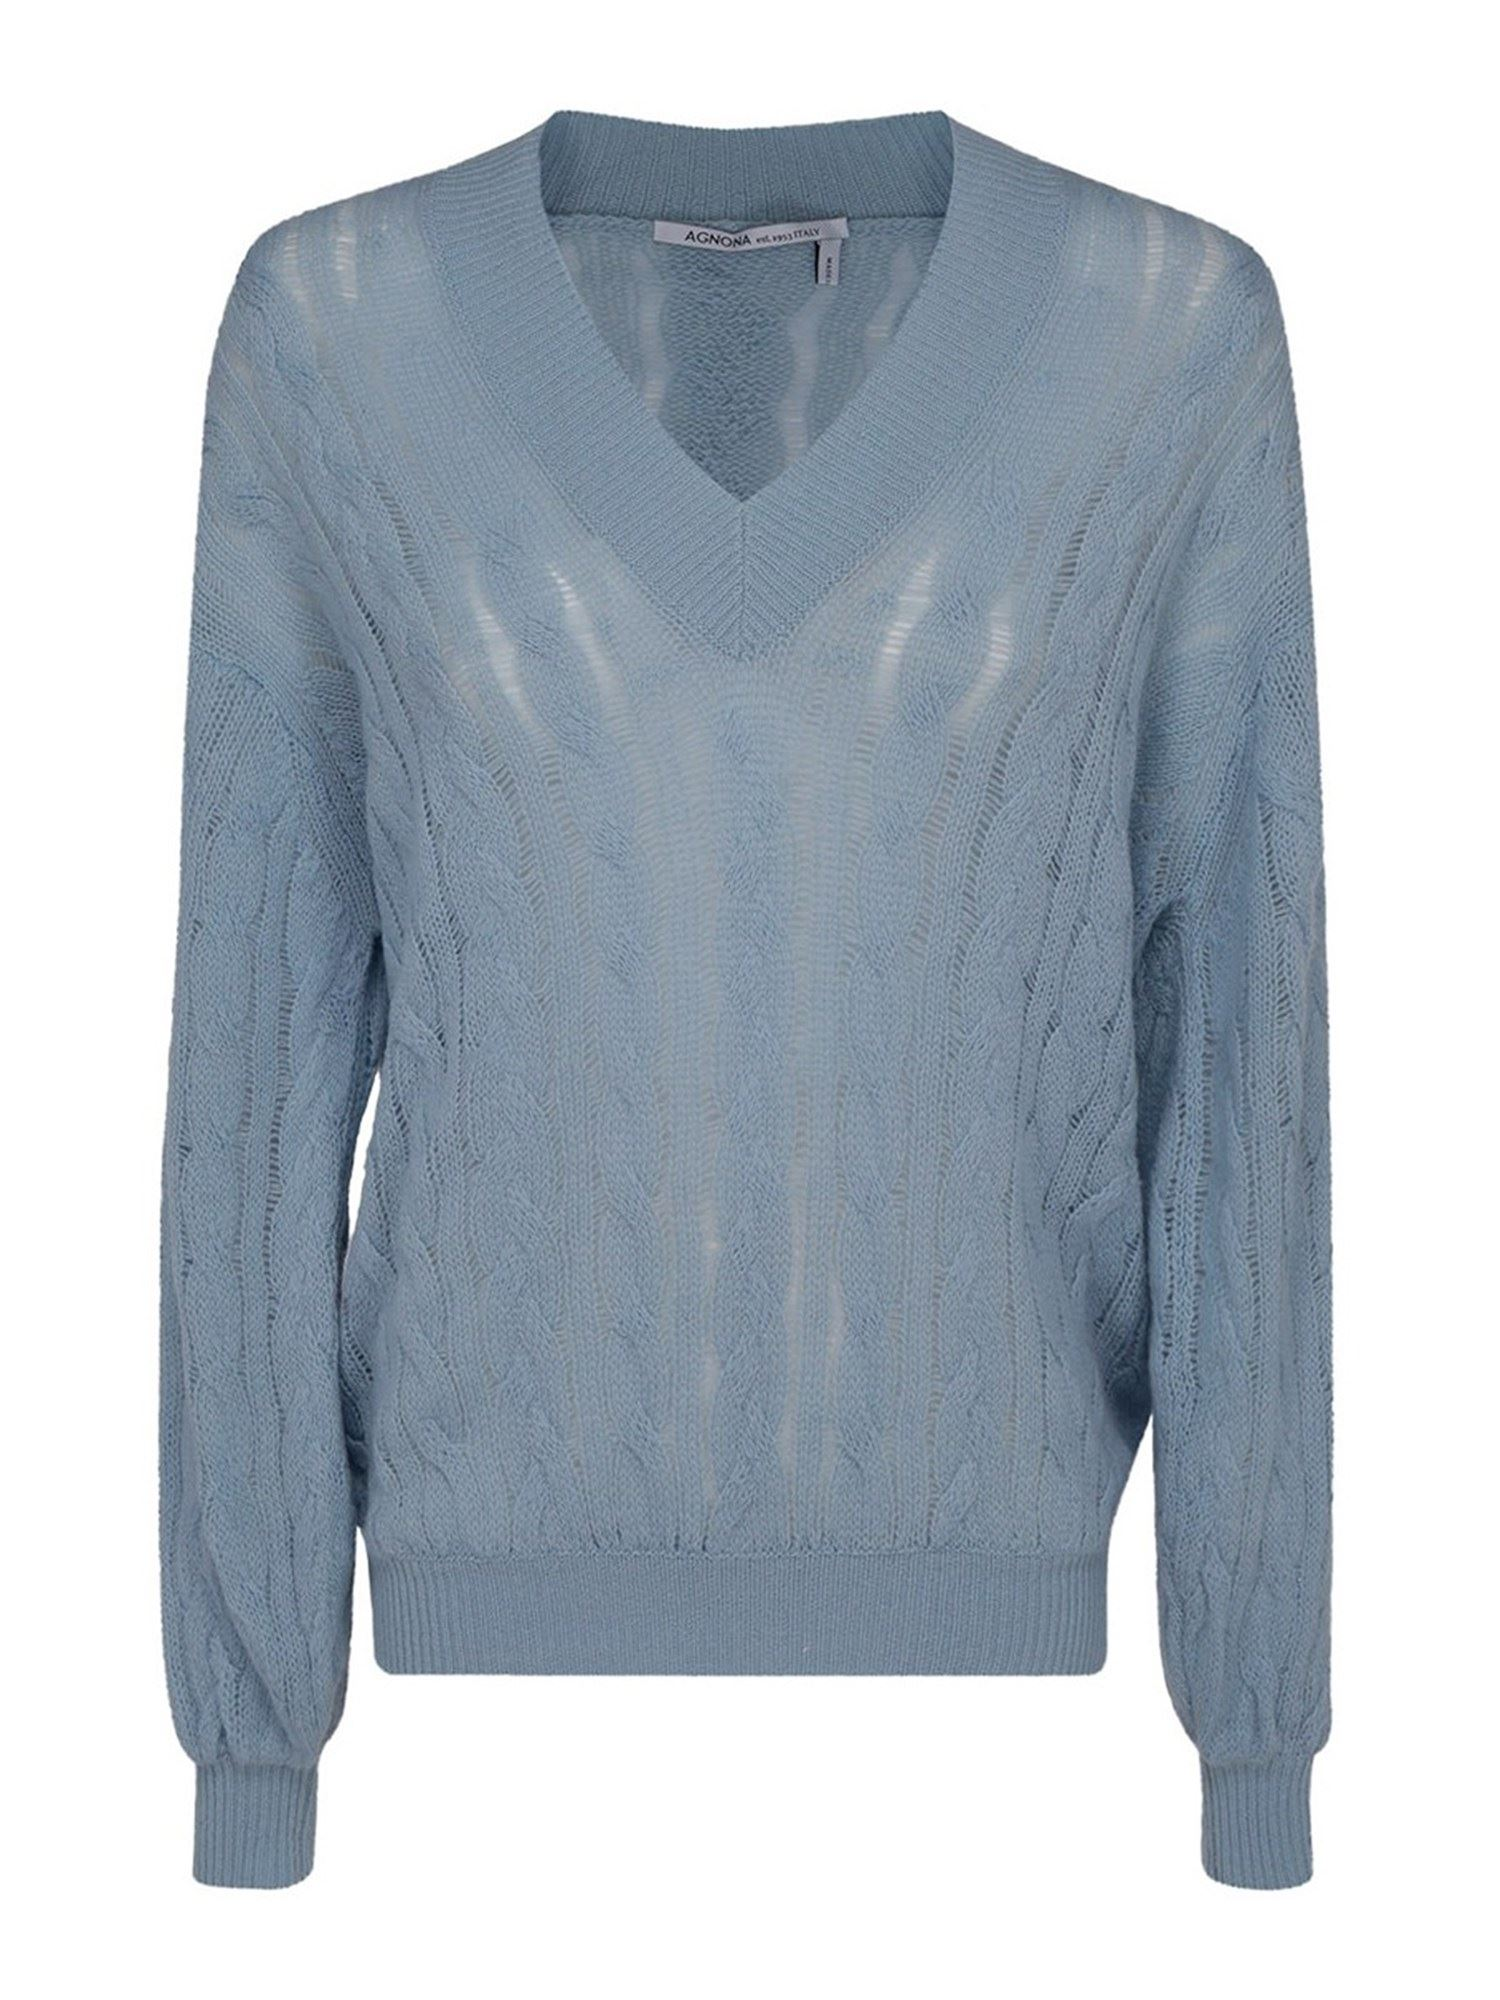 AGNONA CABLE-KNIT CASHMERE SWEATER IN LIGHT BLUE